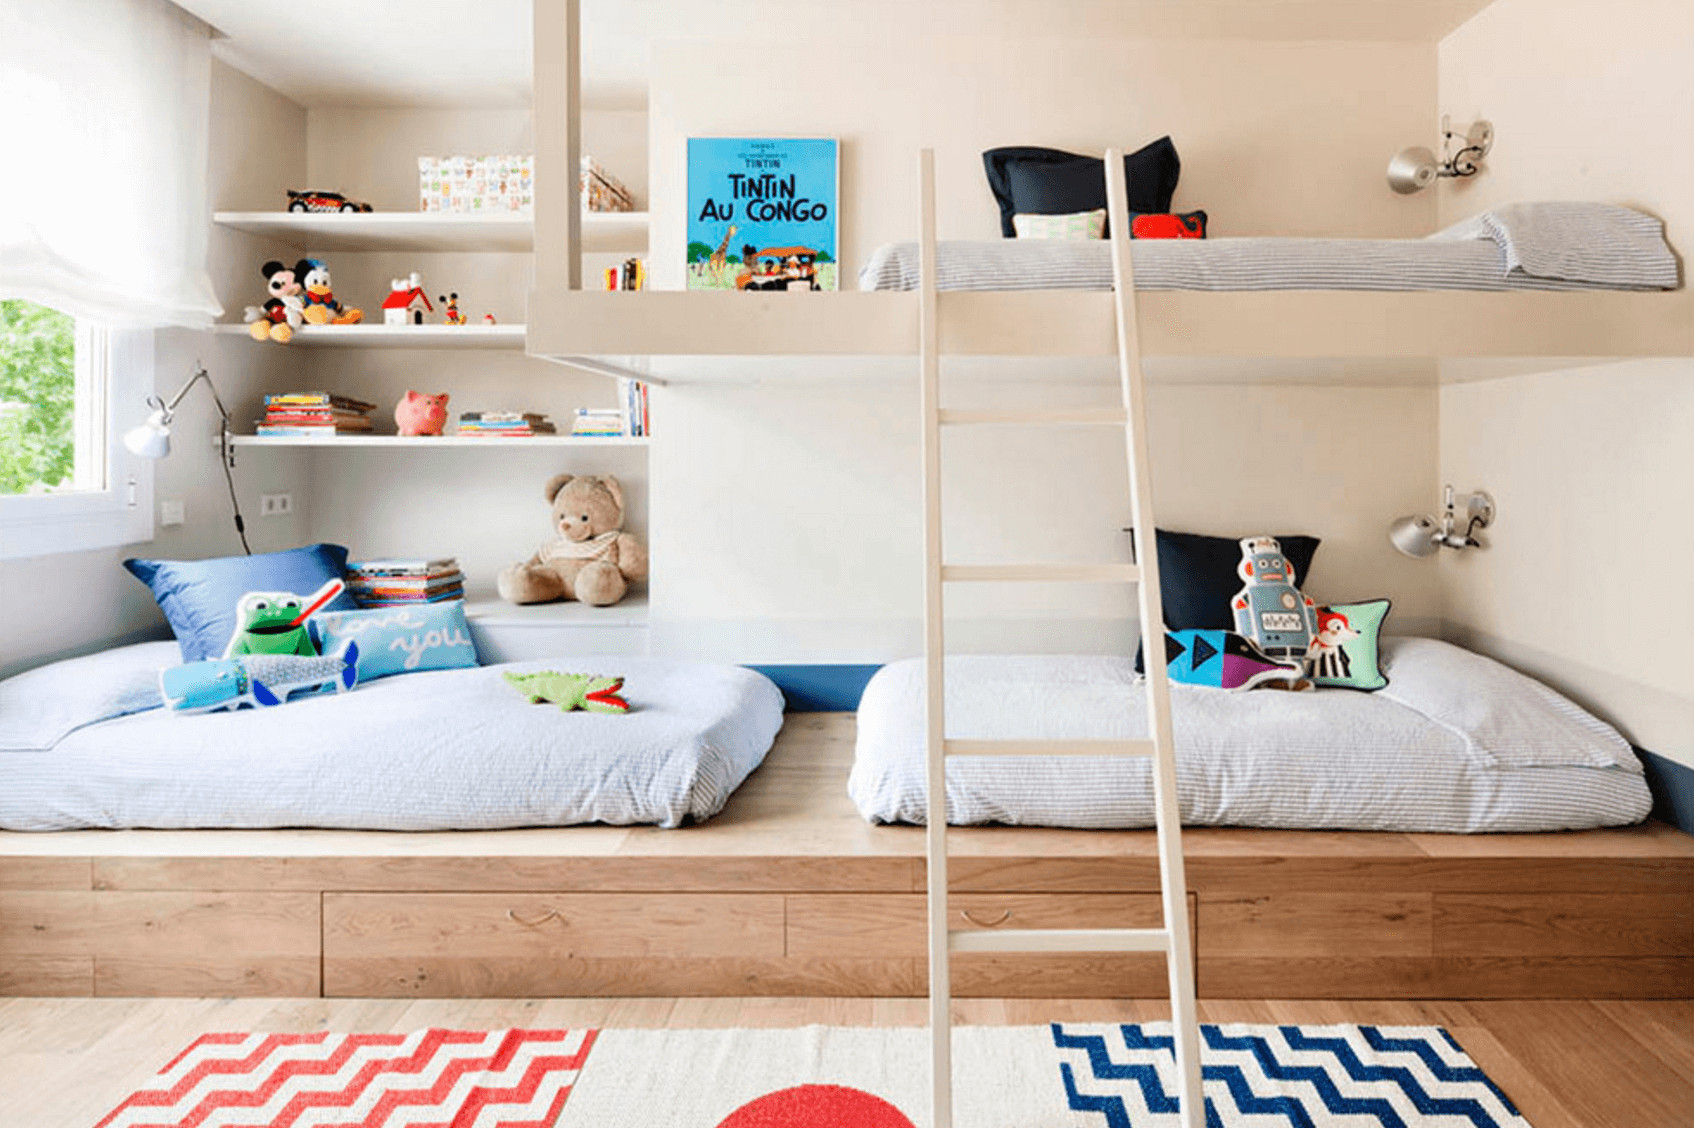 Best ideas about Kids Bedroom Ideas . Save or Pin Creative d Bedroom Ideas for a Modern Kids Room Now.